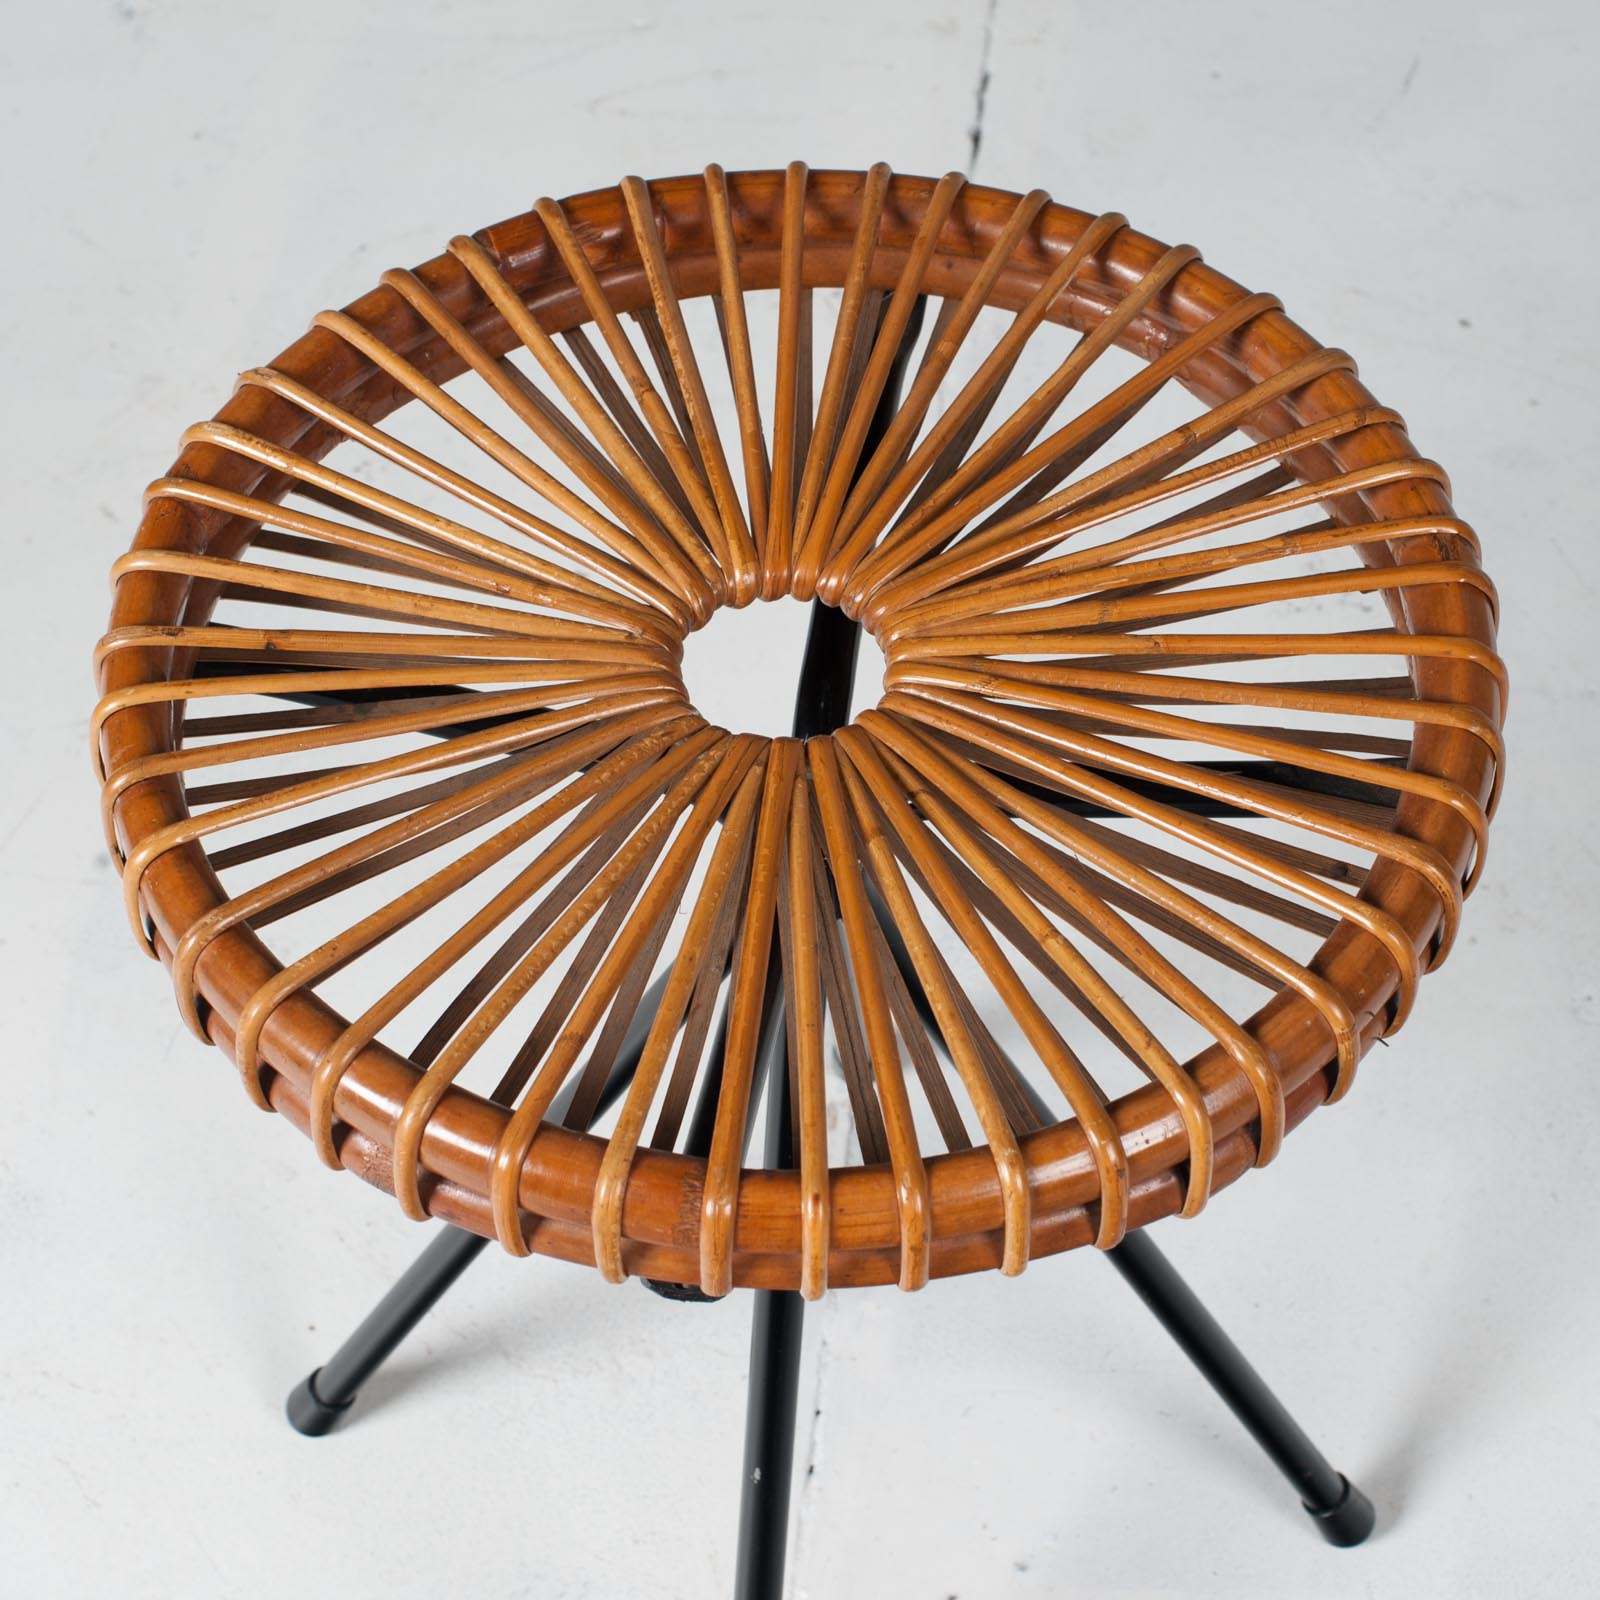 Ratten Stool By Dirk Van Sliedregt For Rohe Noordwolde 1950s Netherlands 03